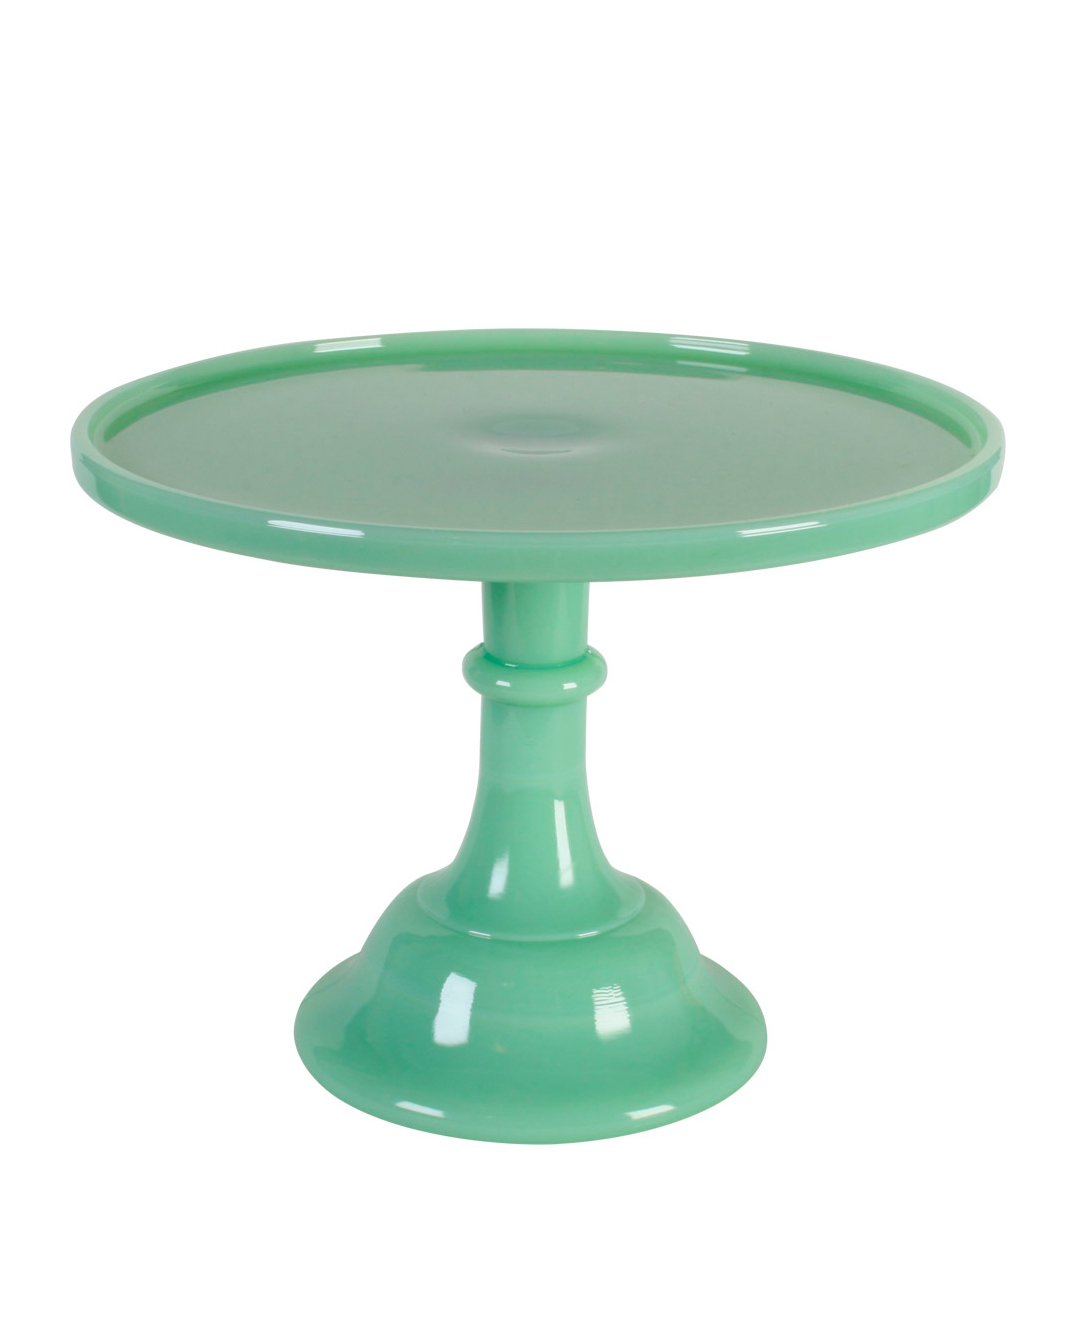 wedding-cake-stands-jadeite-1115.jpg